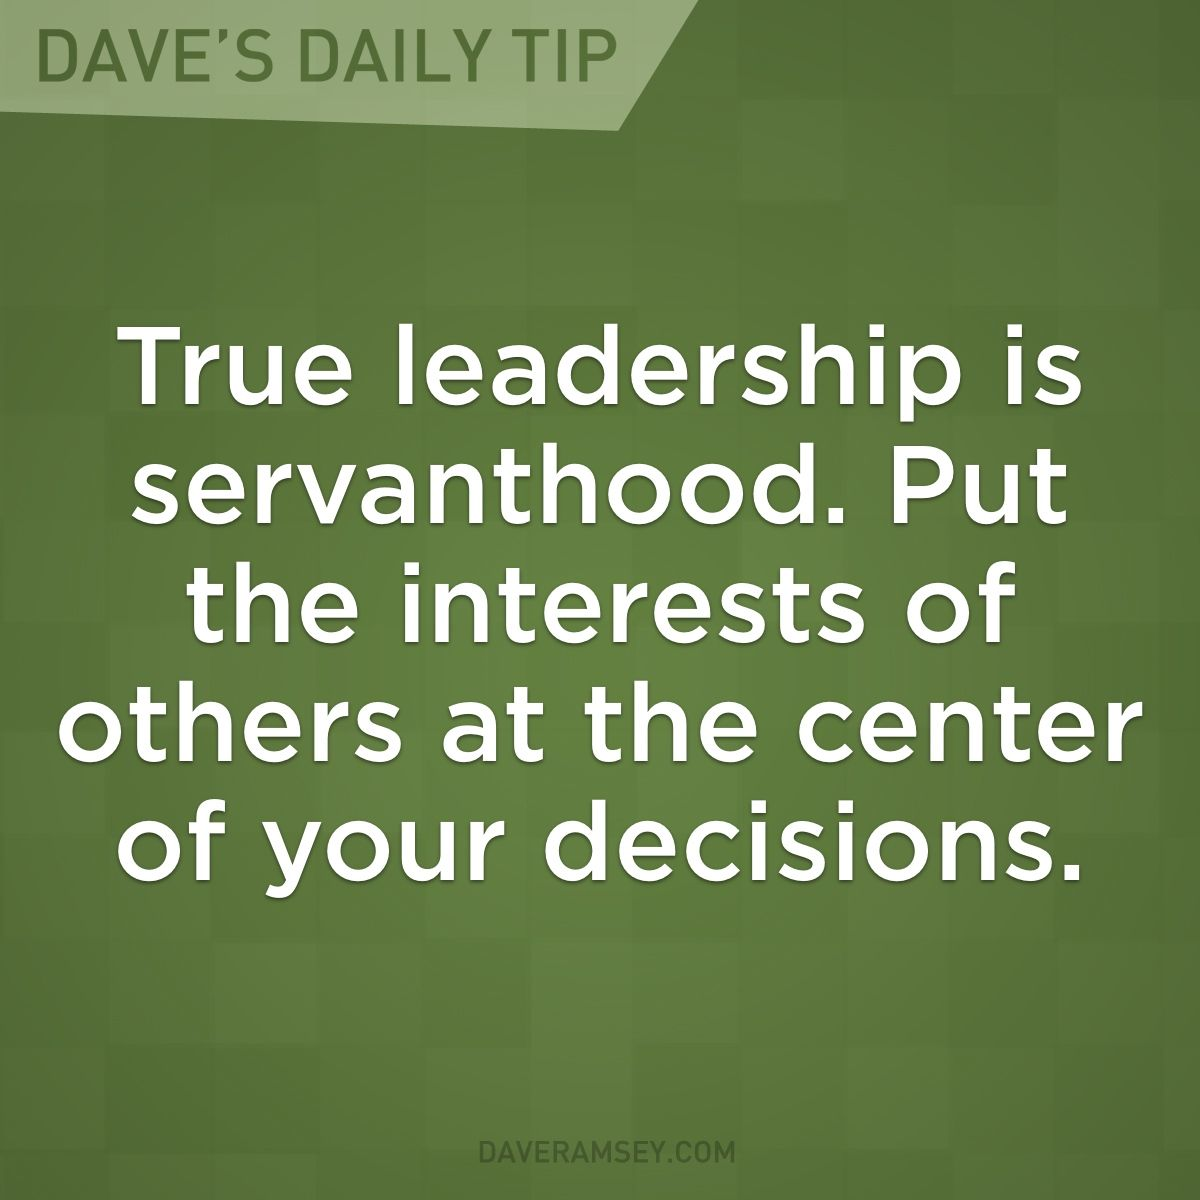 Servant Leadership Quotes Servanthood Doesn't Mean Being A Doormat It Means Doing The Right